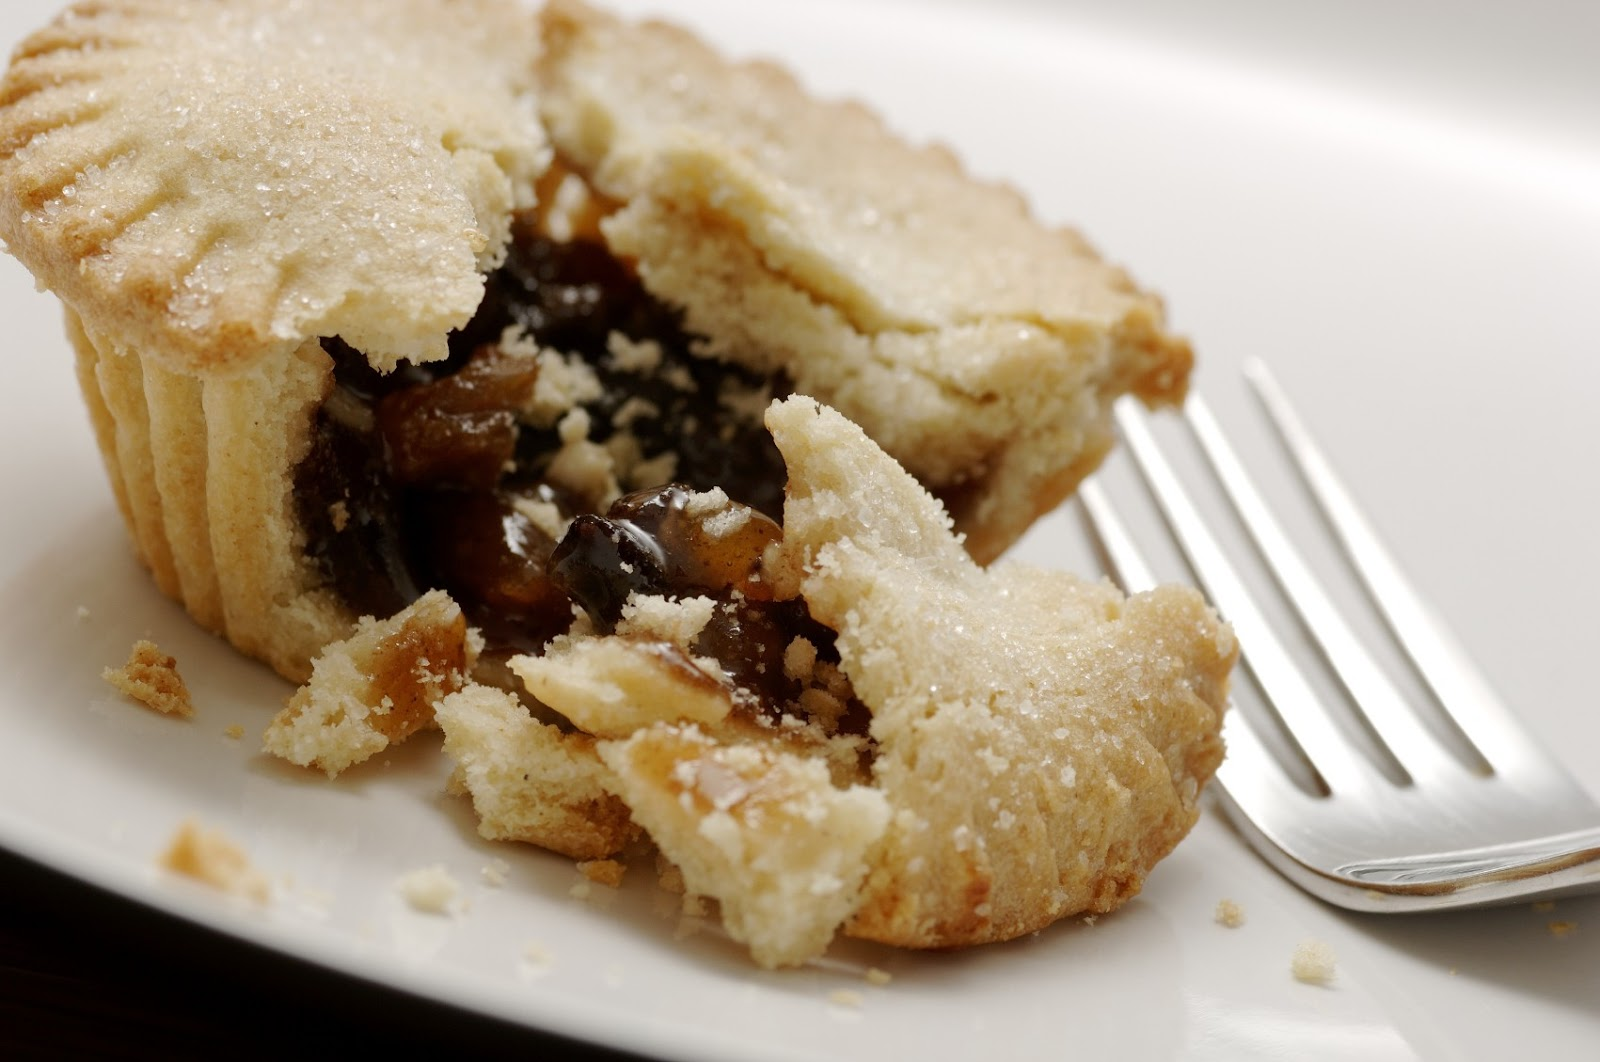 mince pie also known as minced pie is a